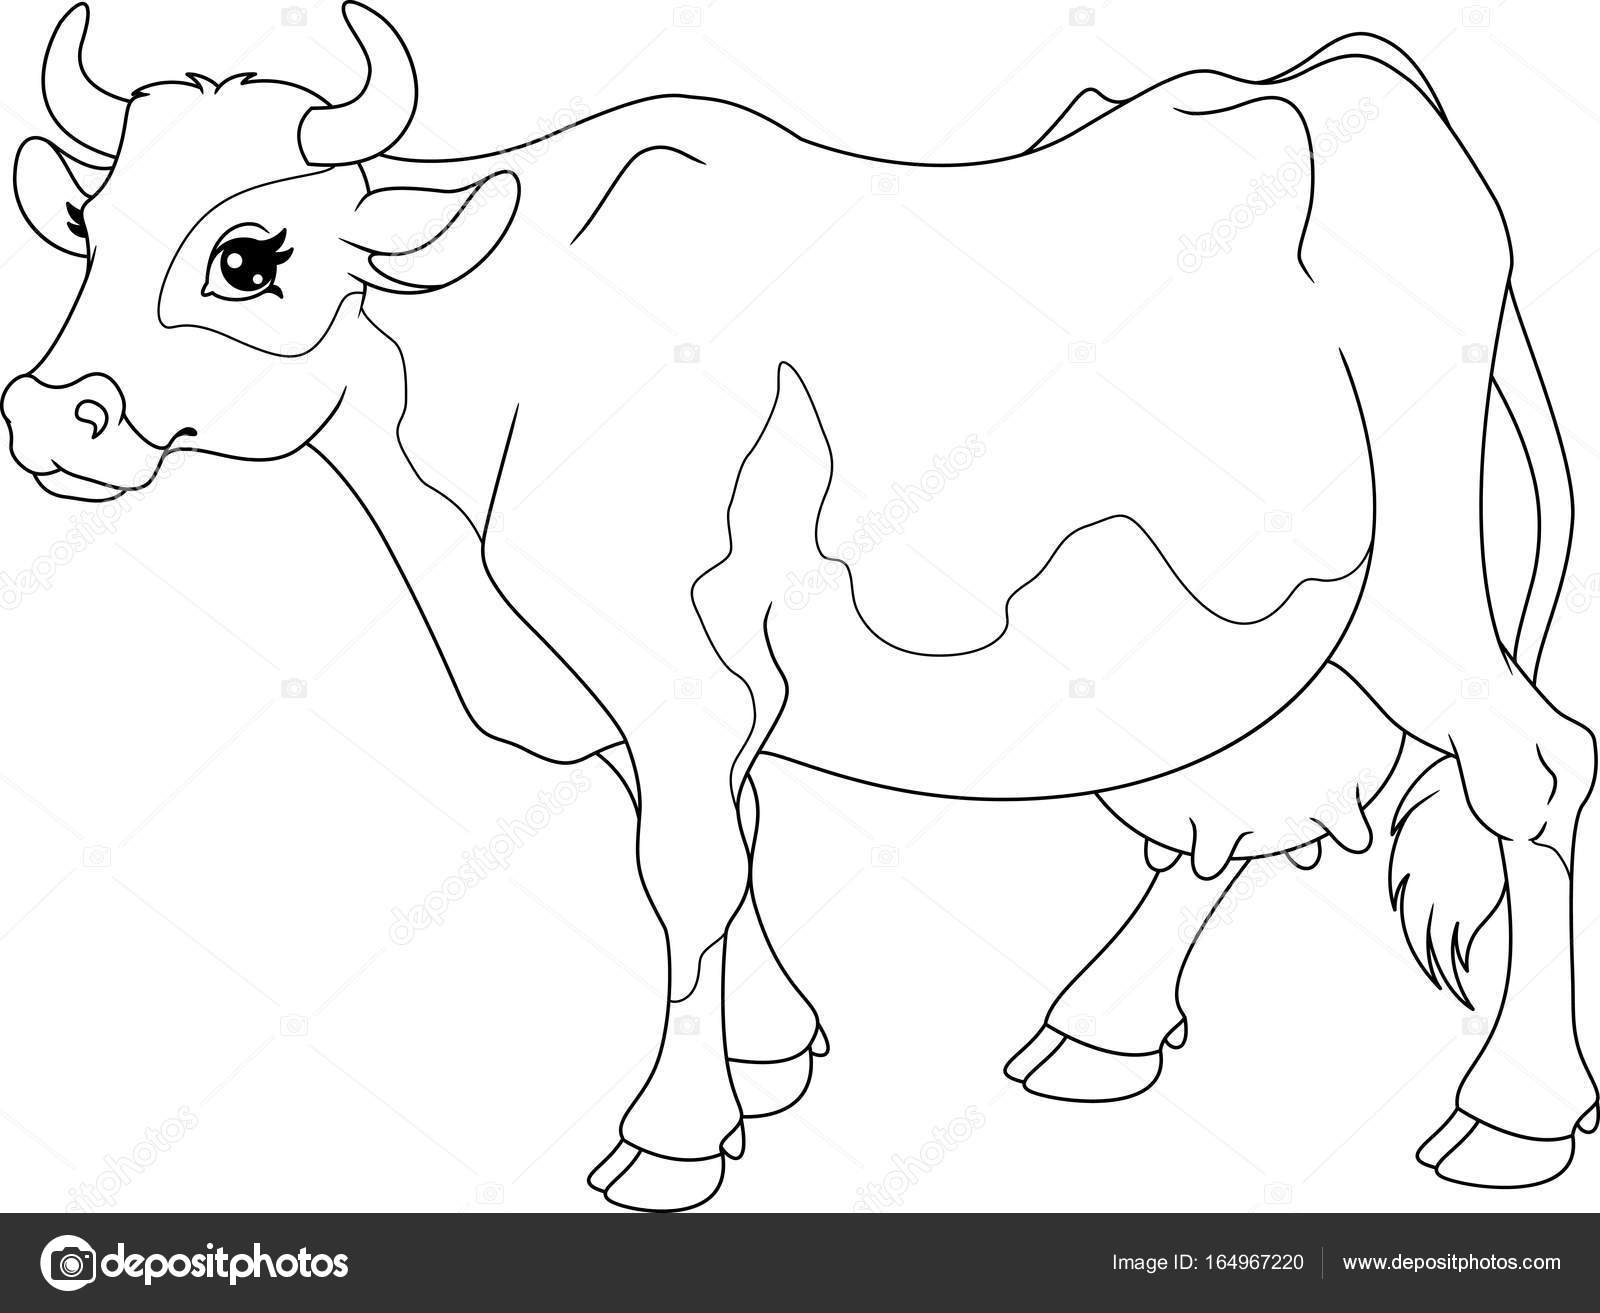 Cow Coloring Page Stock Vector C Malyaka 164967220